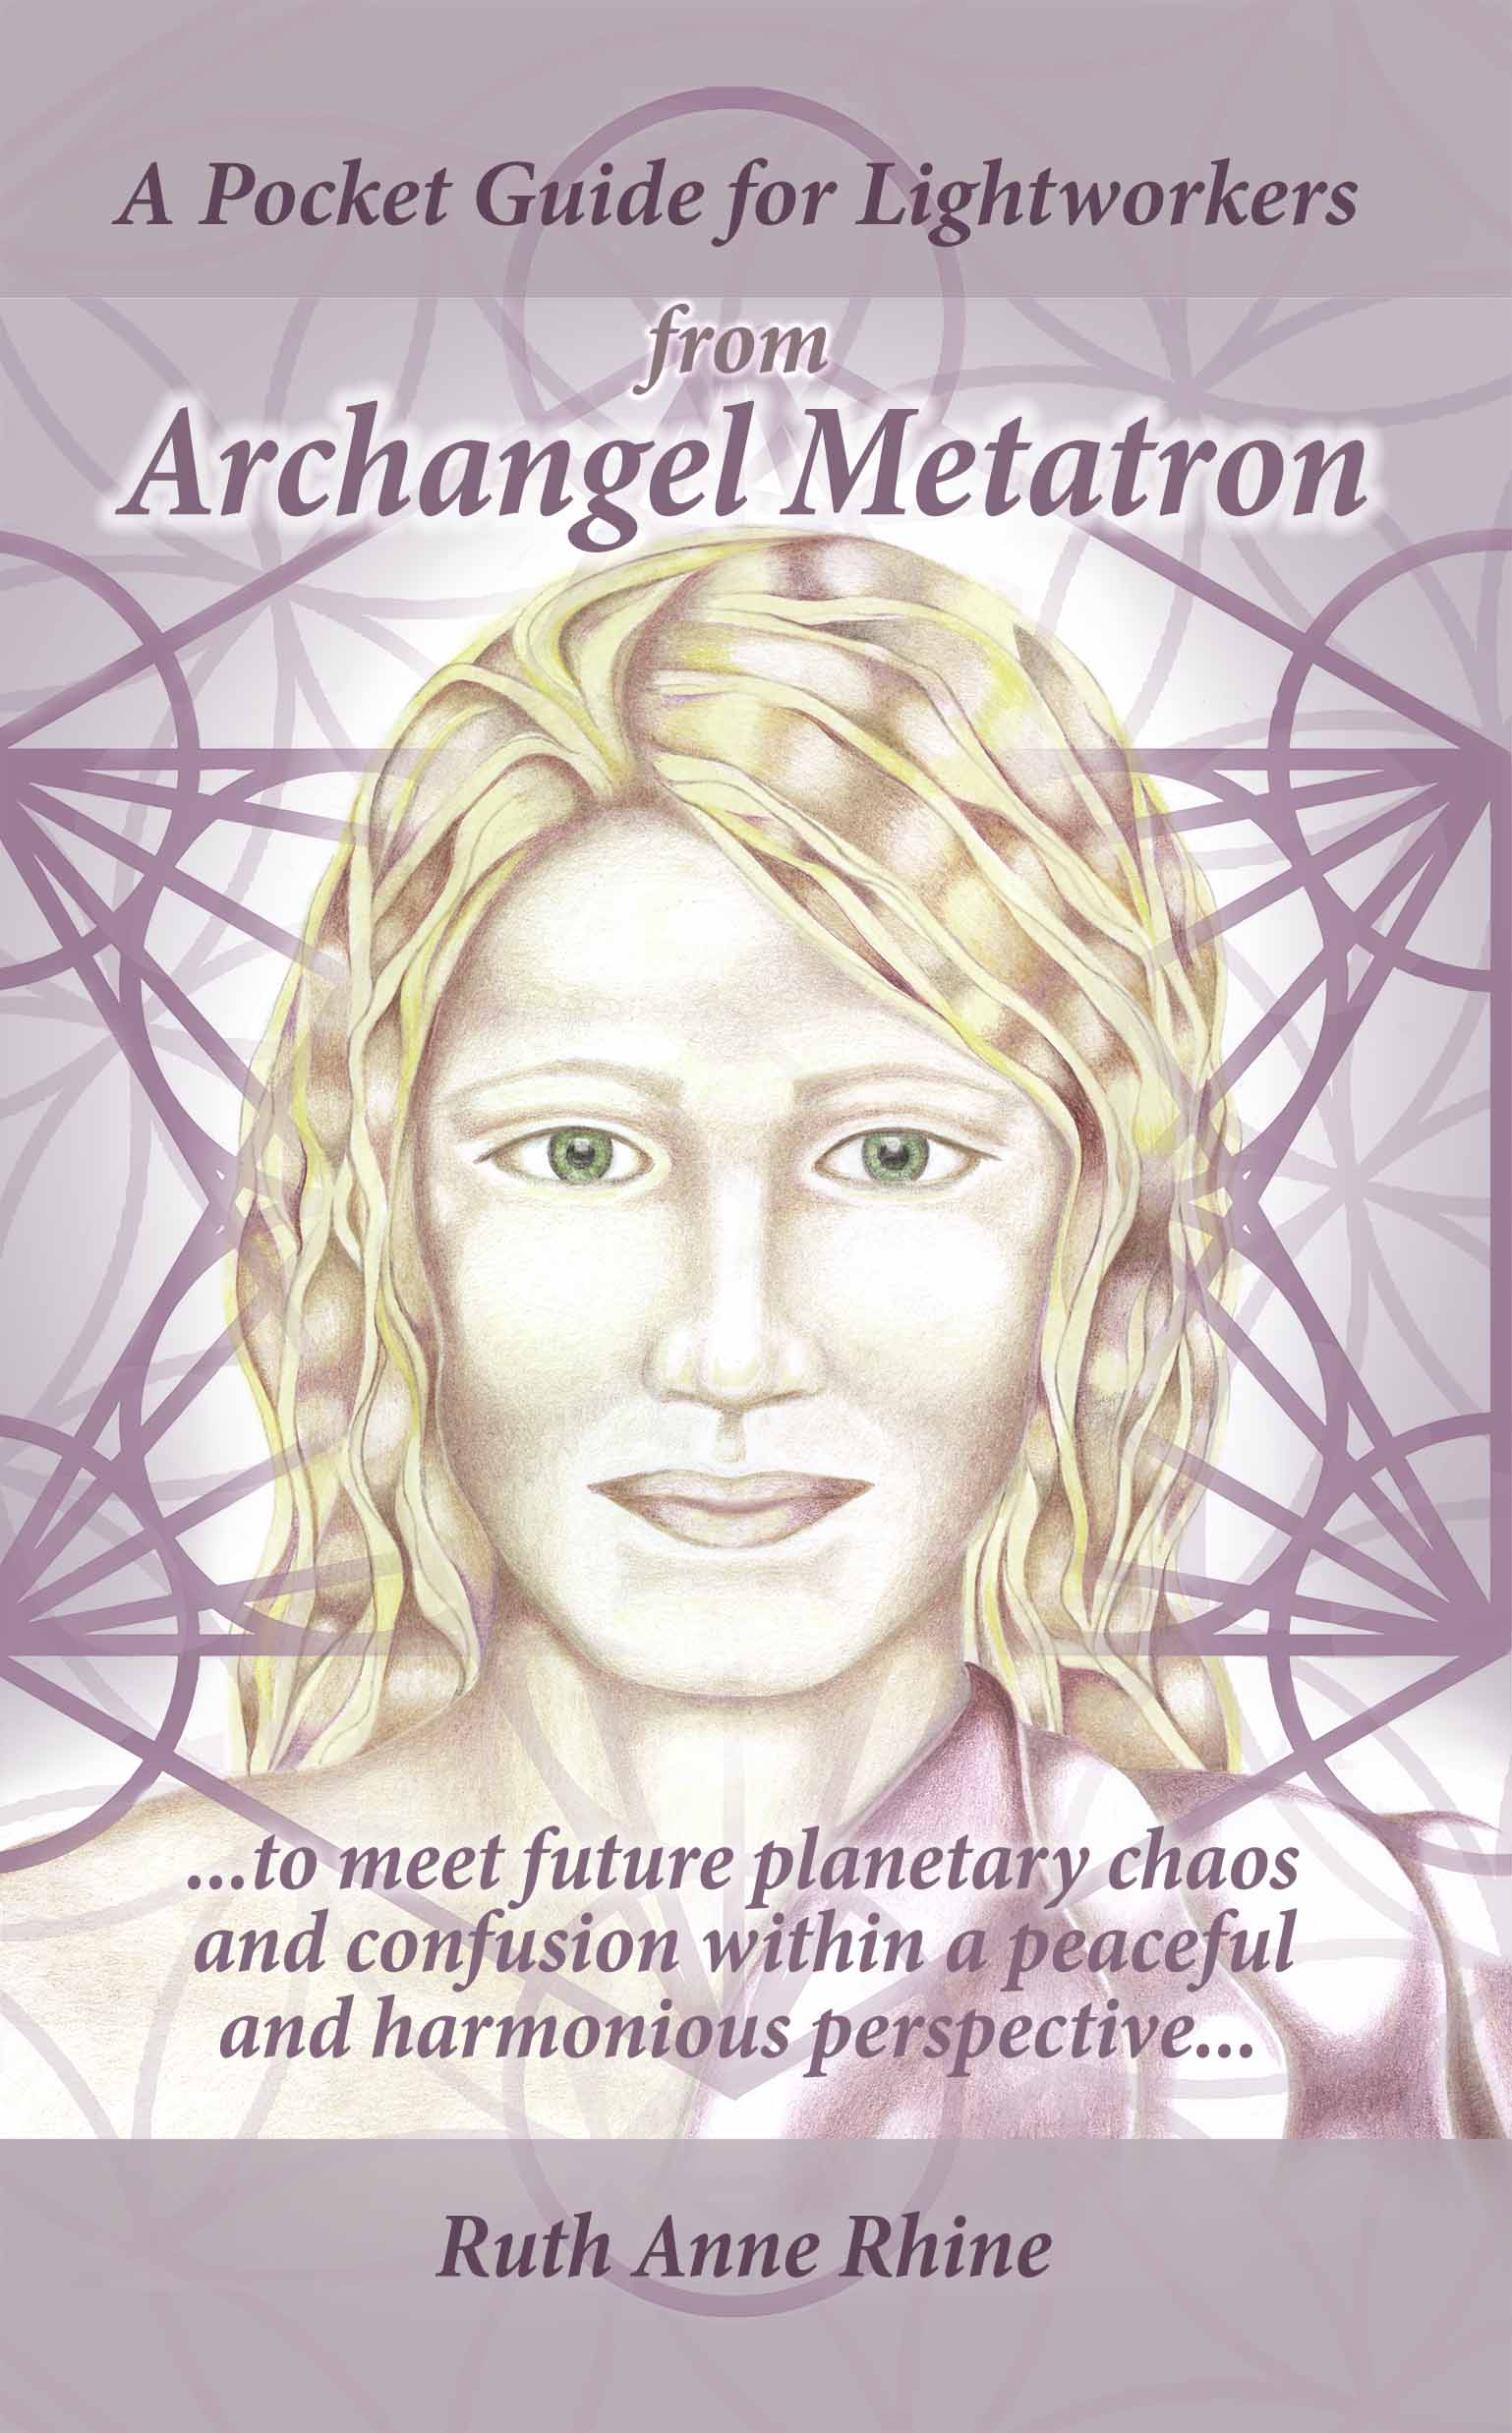 A Pocket Guide for Lightworkers from Archangel Metatron